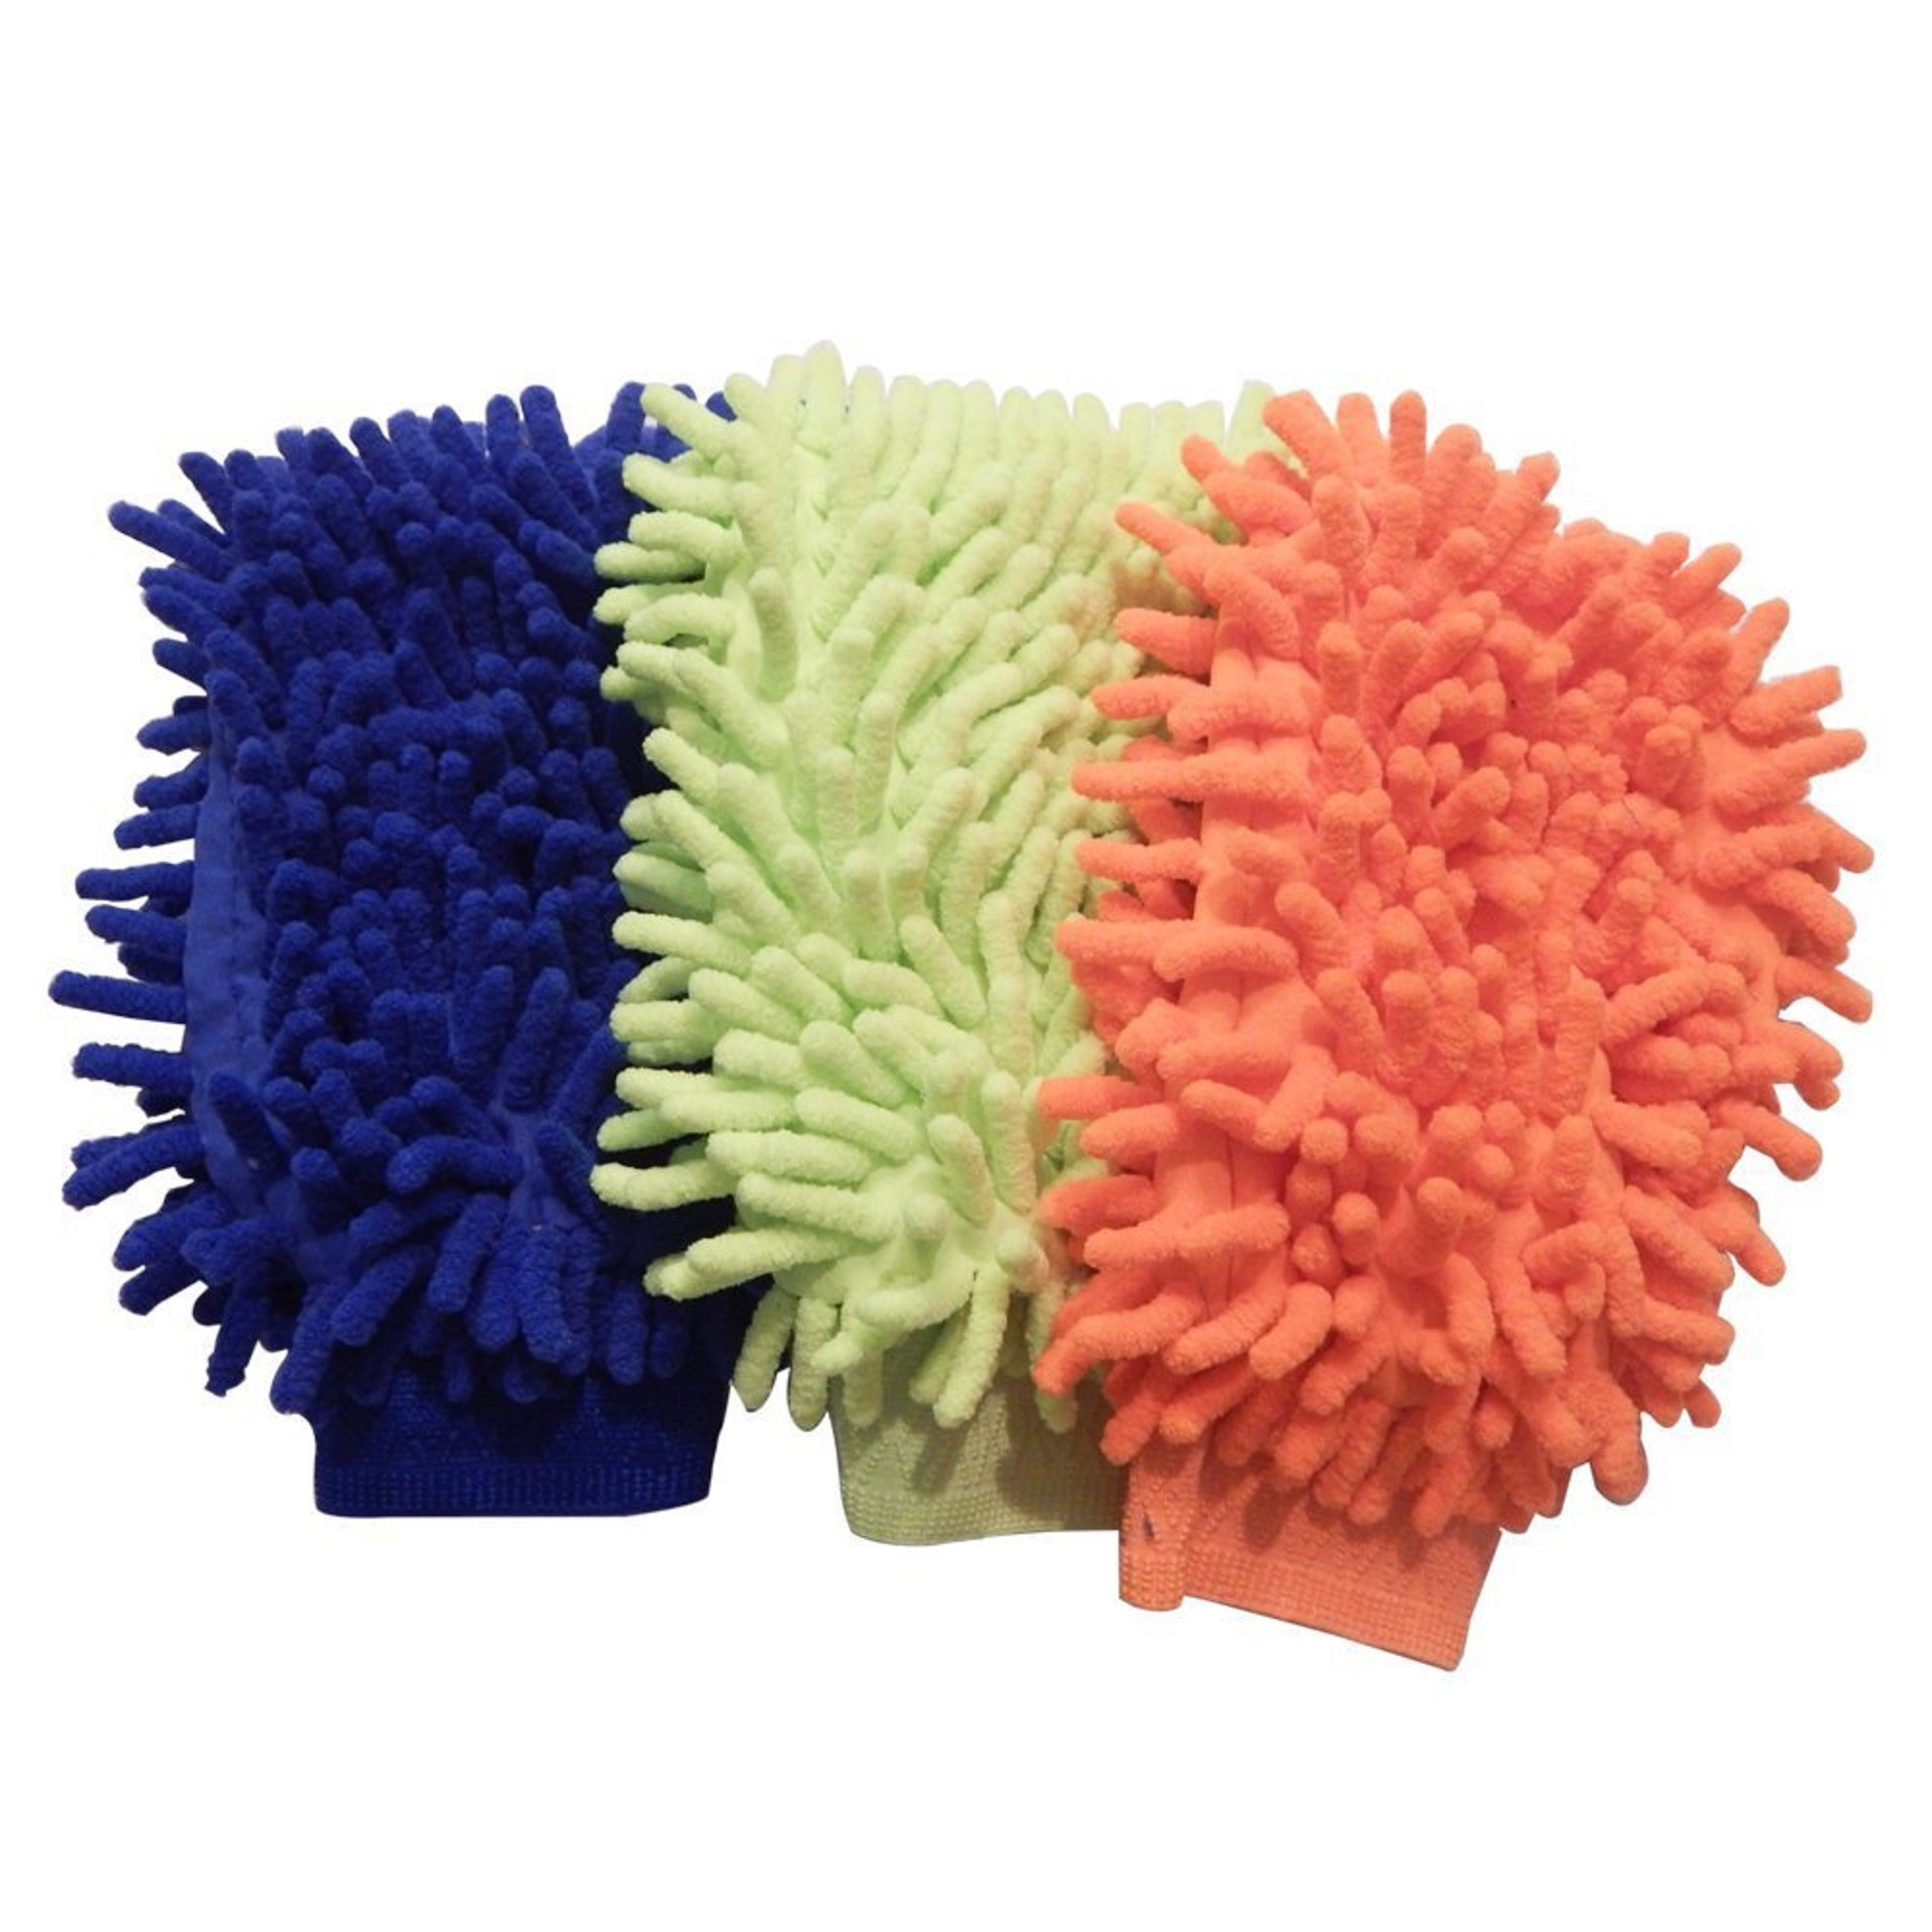 3 Pack Car Washing Microfiber Chenille Mitt Big Soft Cleaning Gloves Lint Free